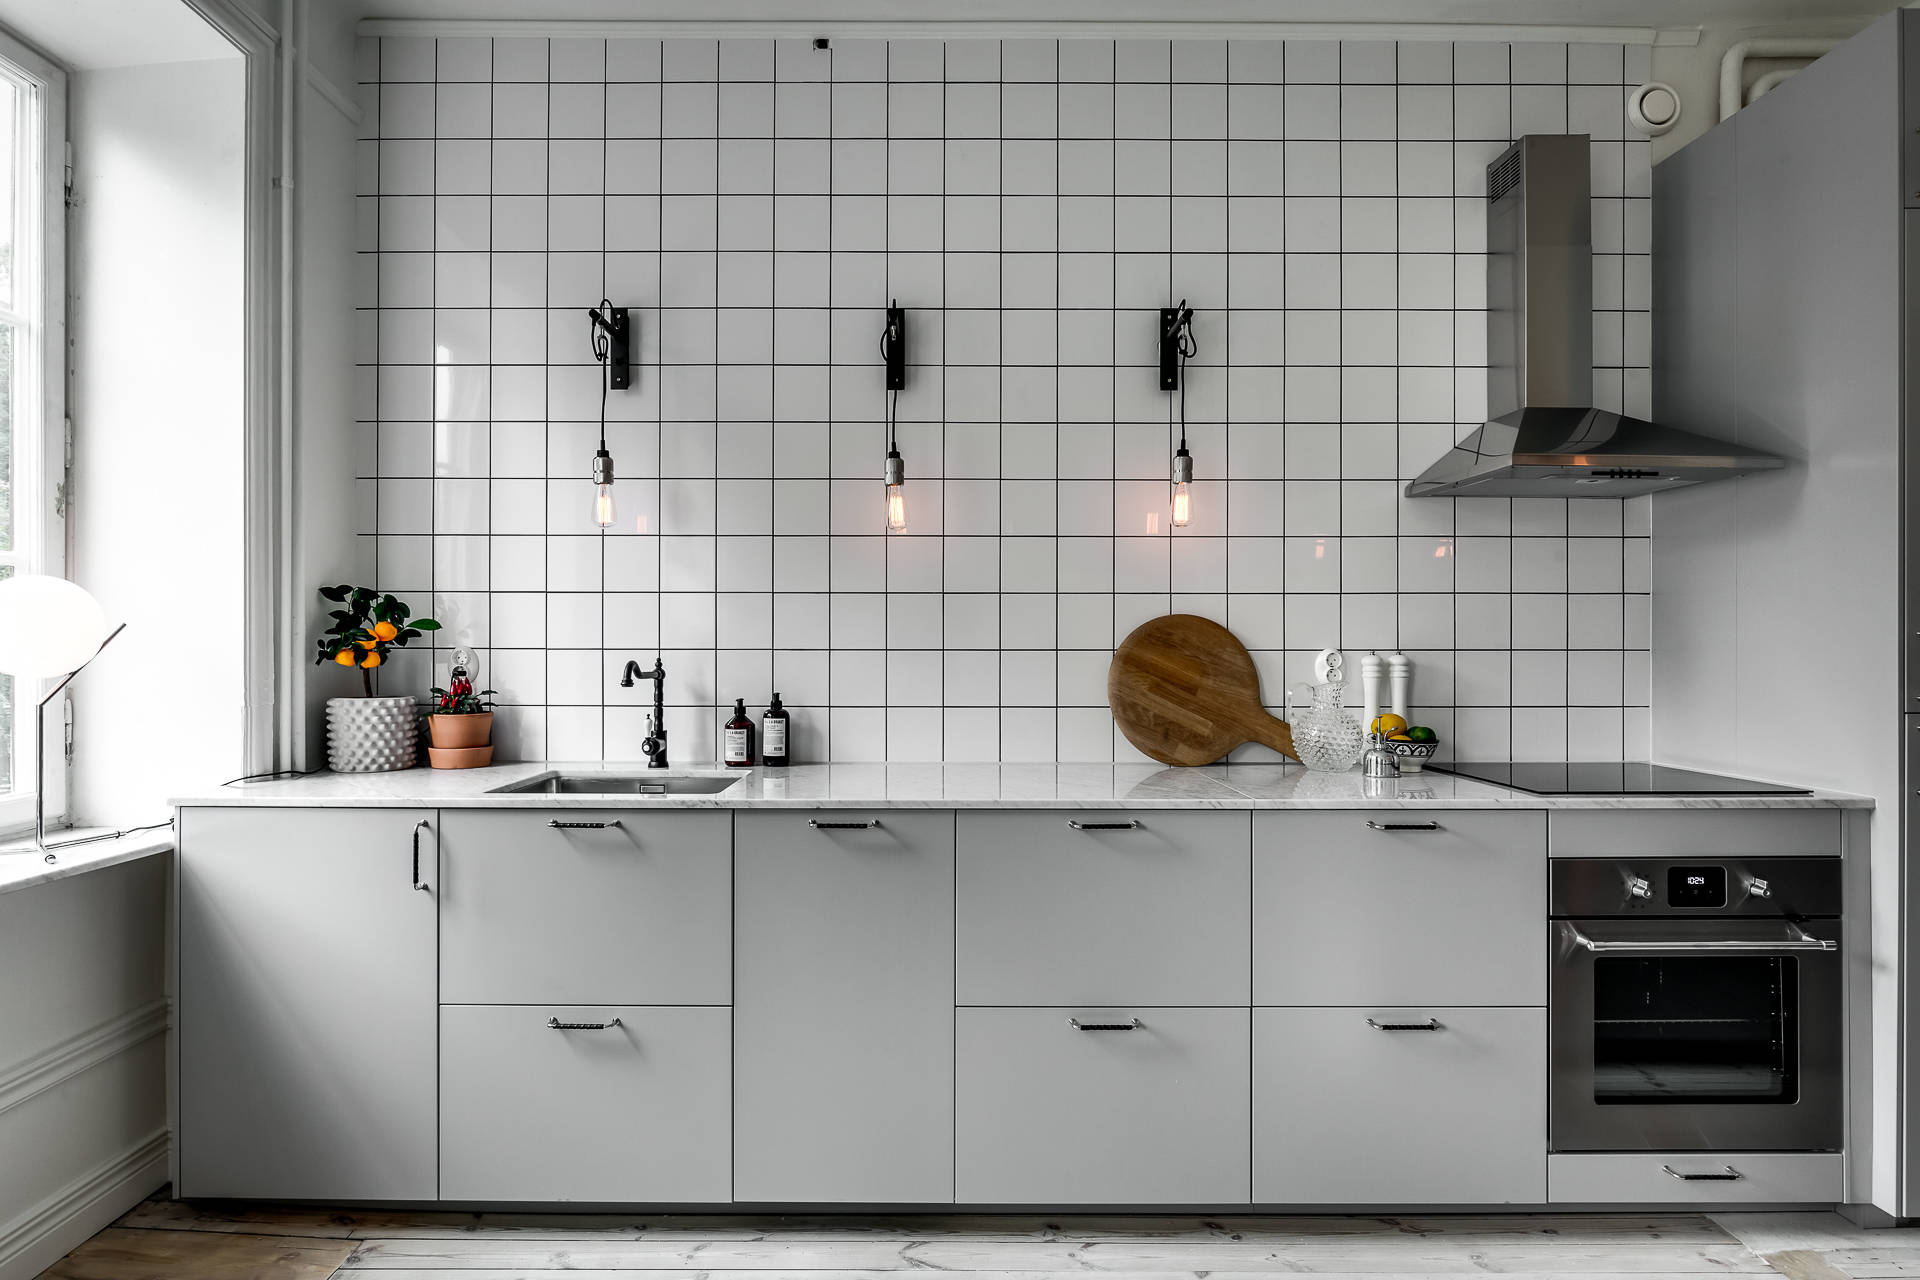 Cuisine Minimaliste Design Minimal Kitchen With An Industrial Touch Coco Lapine